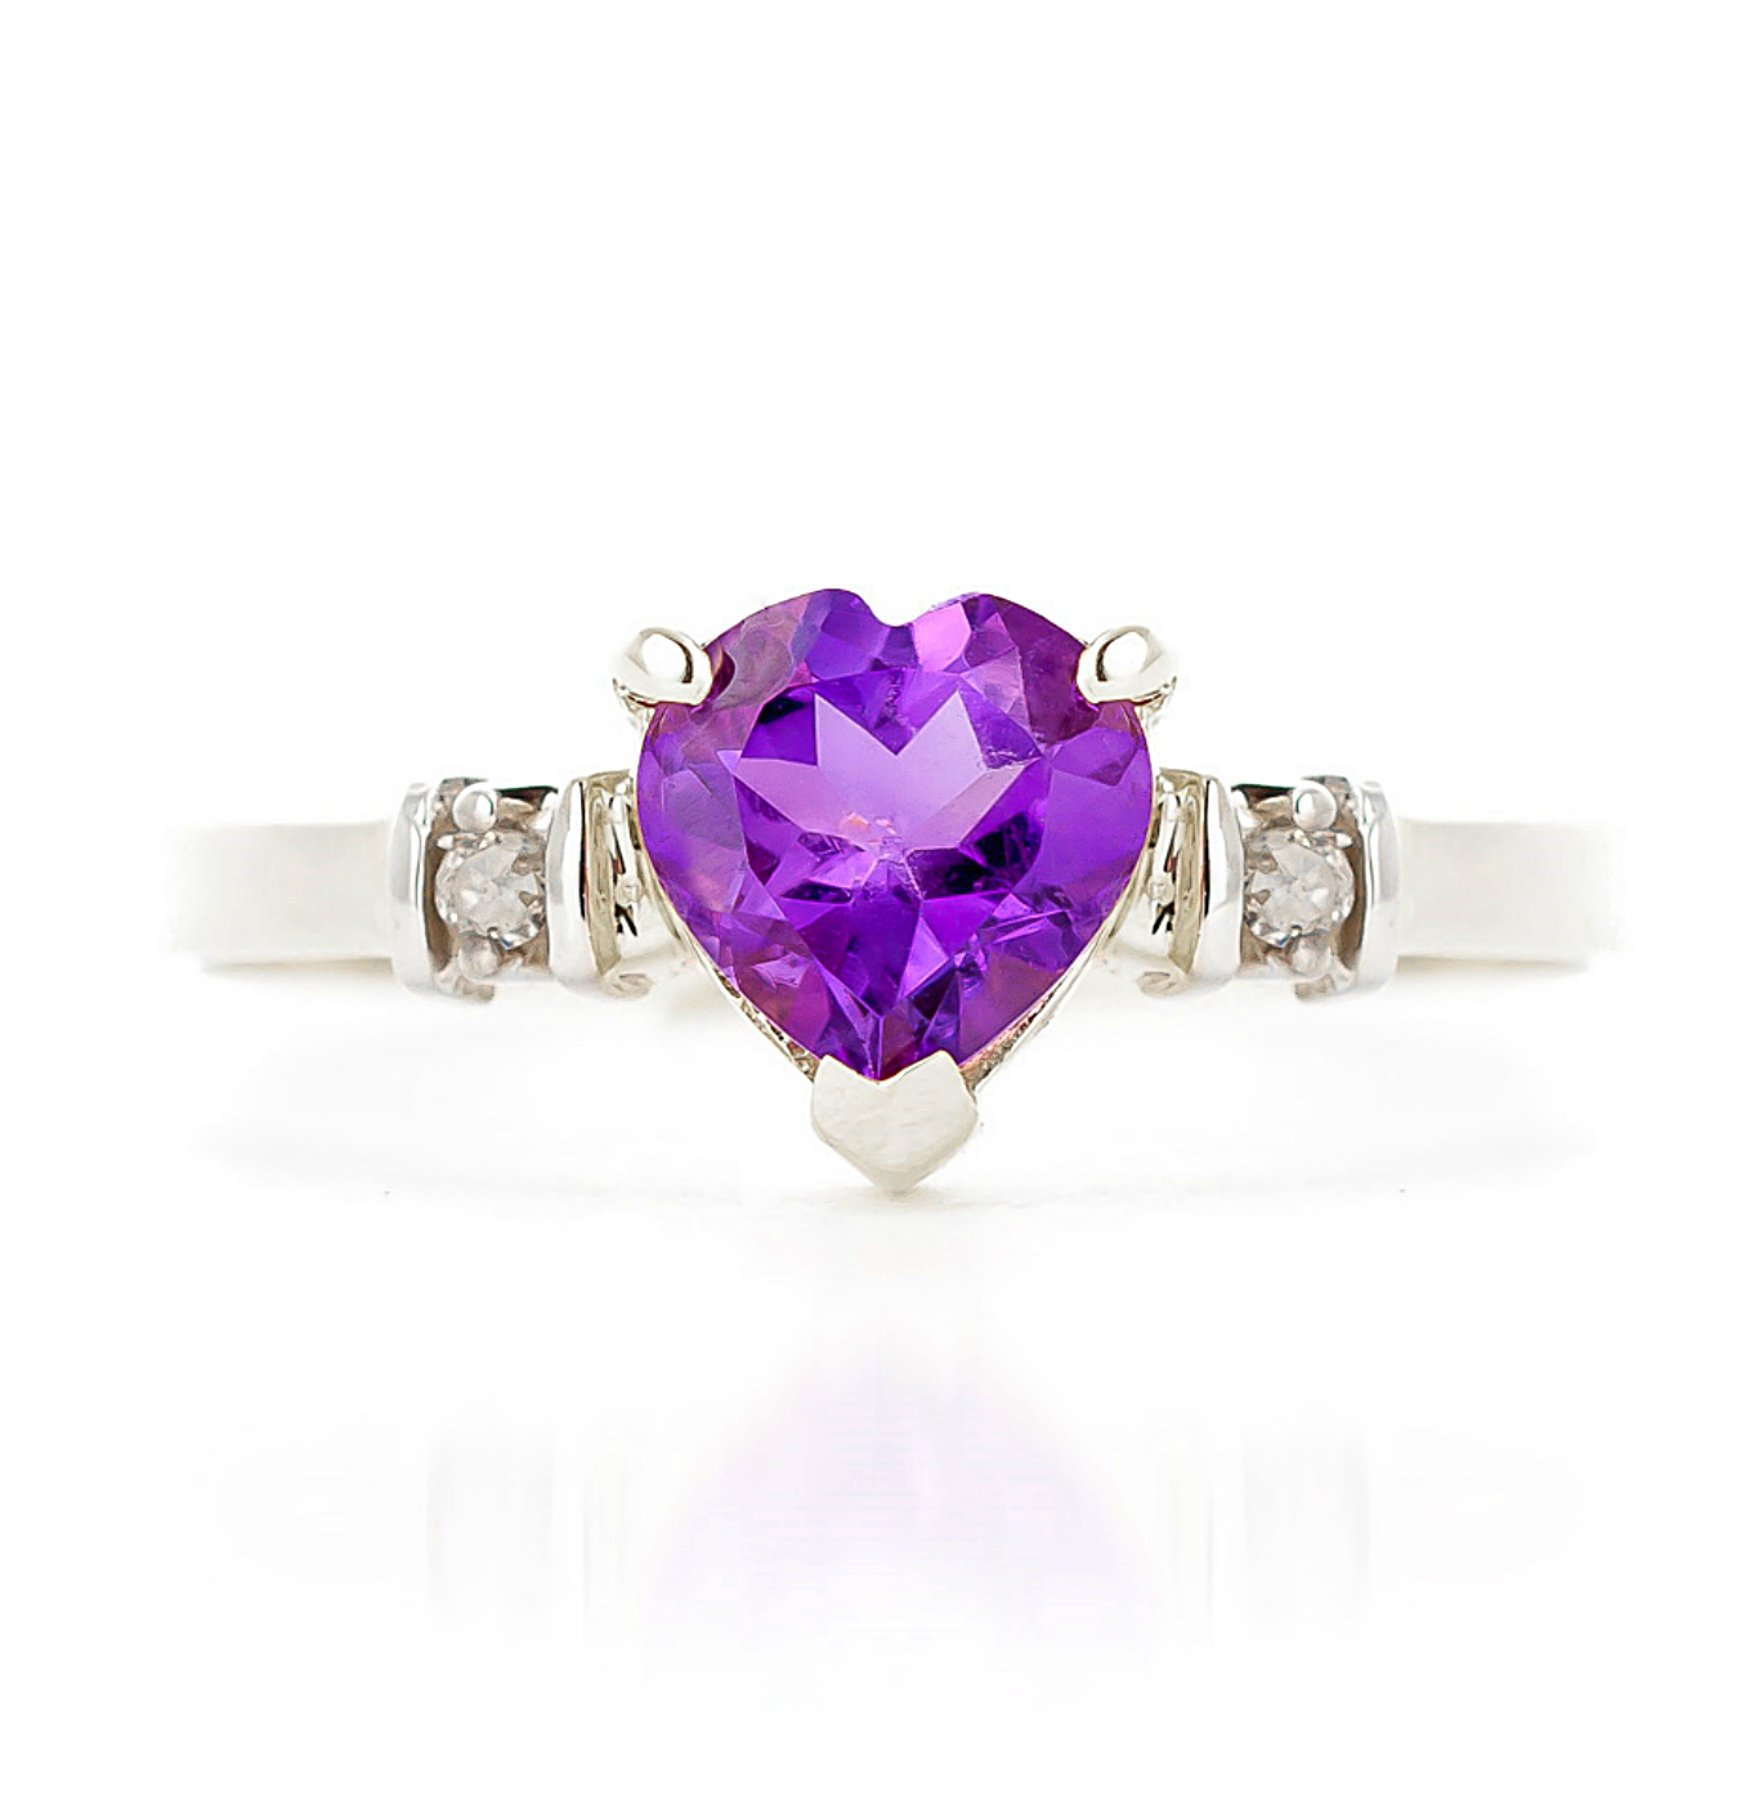 14k White Gold Ring with Genuine Diamonds and Natural Heart-shaped Purple Amethyst - Size 10.0 by Galaxy Gold (Image #4)